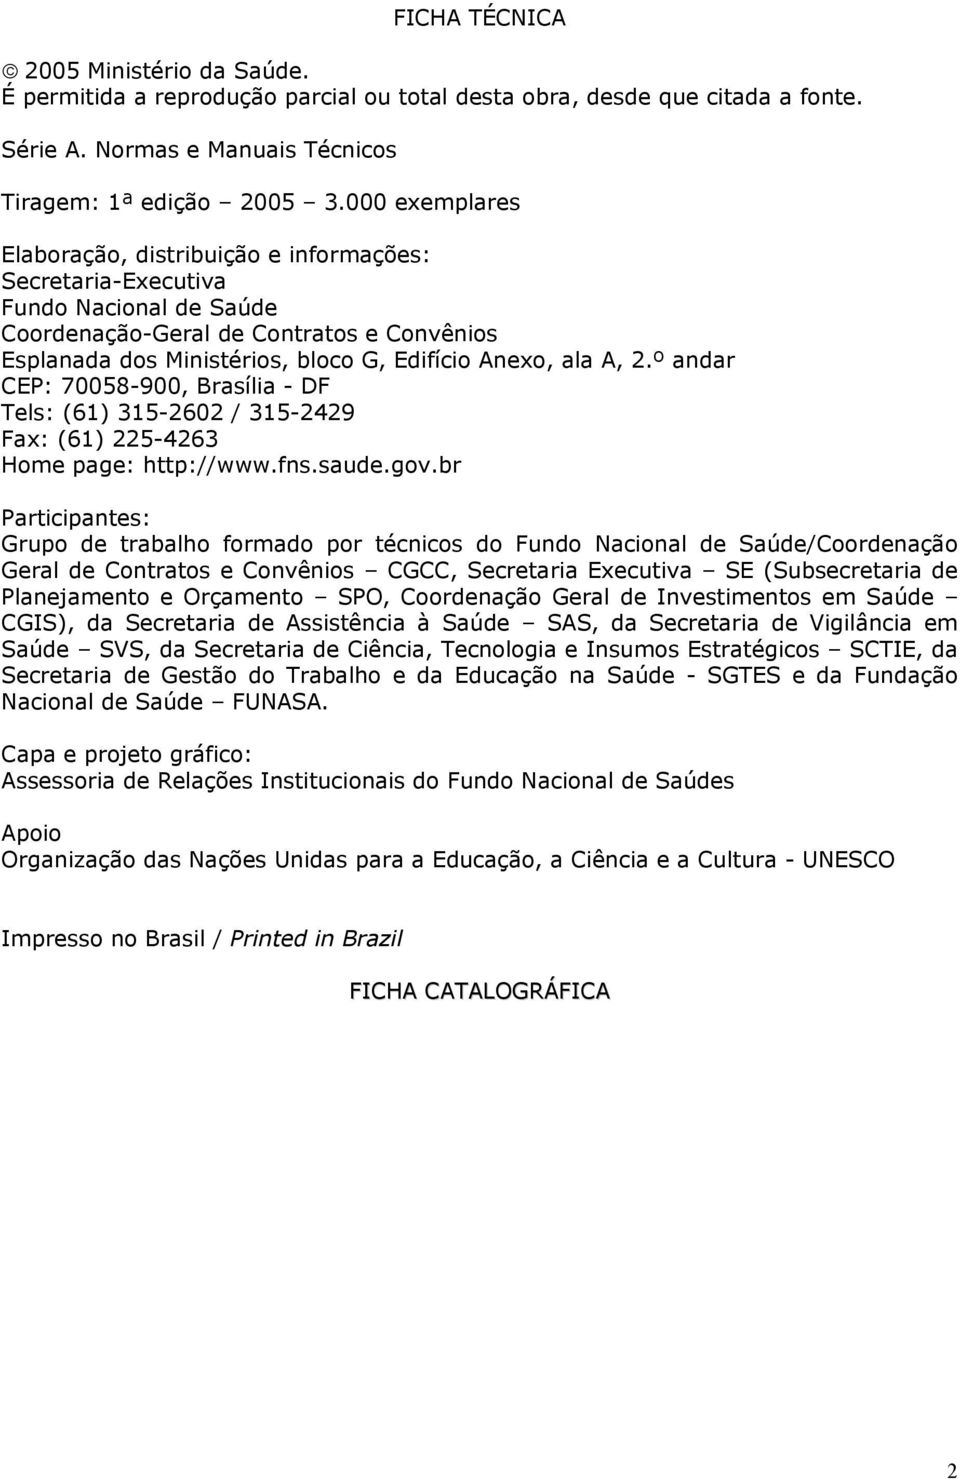 A, 2.º andar CEP: 70058-900, Brasília - DF Tels: (61) 315-2602 / 315-2429 Fax: (61) 225-4263 Home page: http://www.fns.saude.gov.